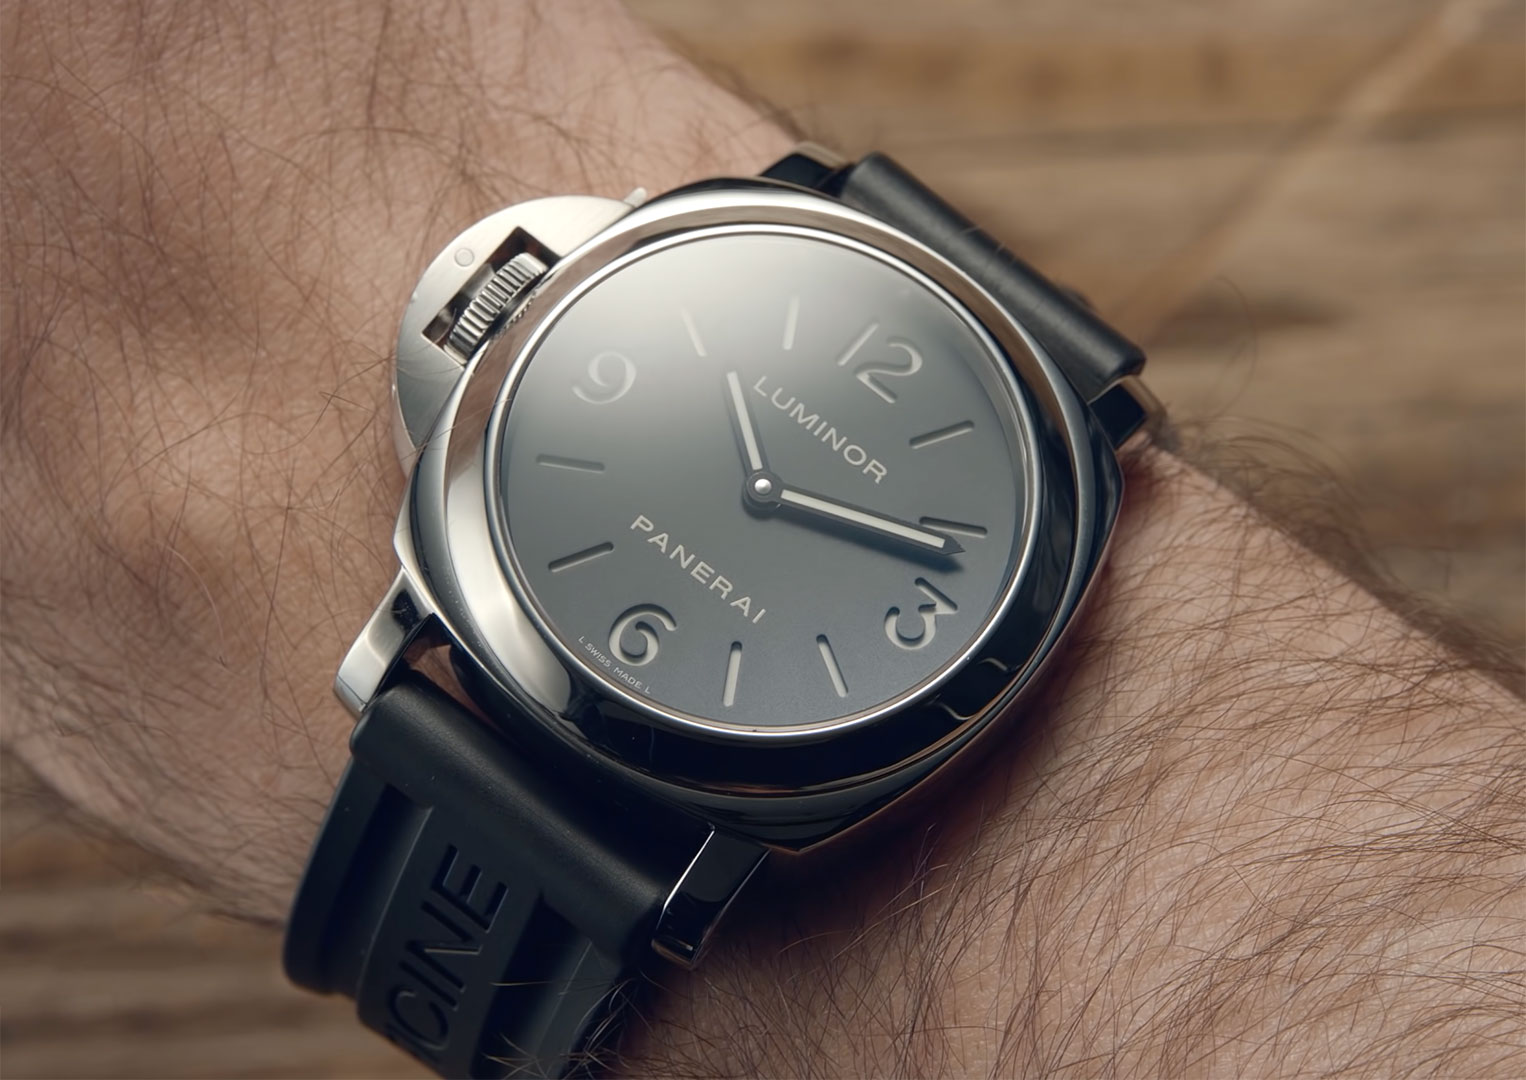 Panerai was founded by Giovanni Panerai